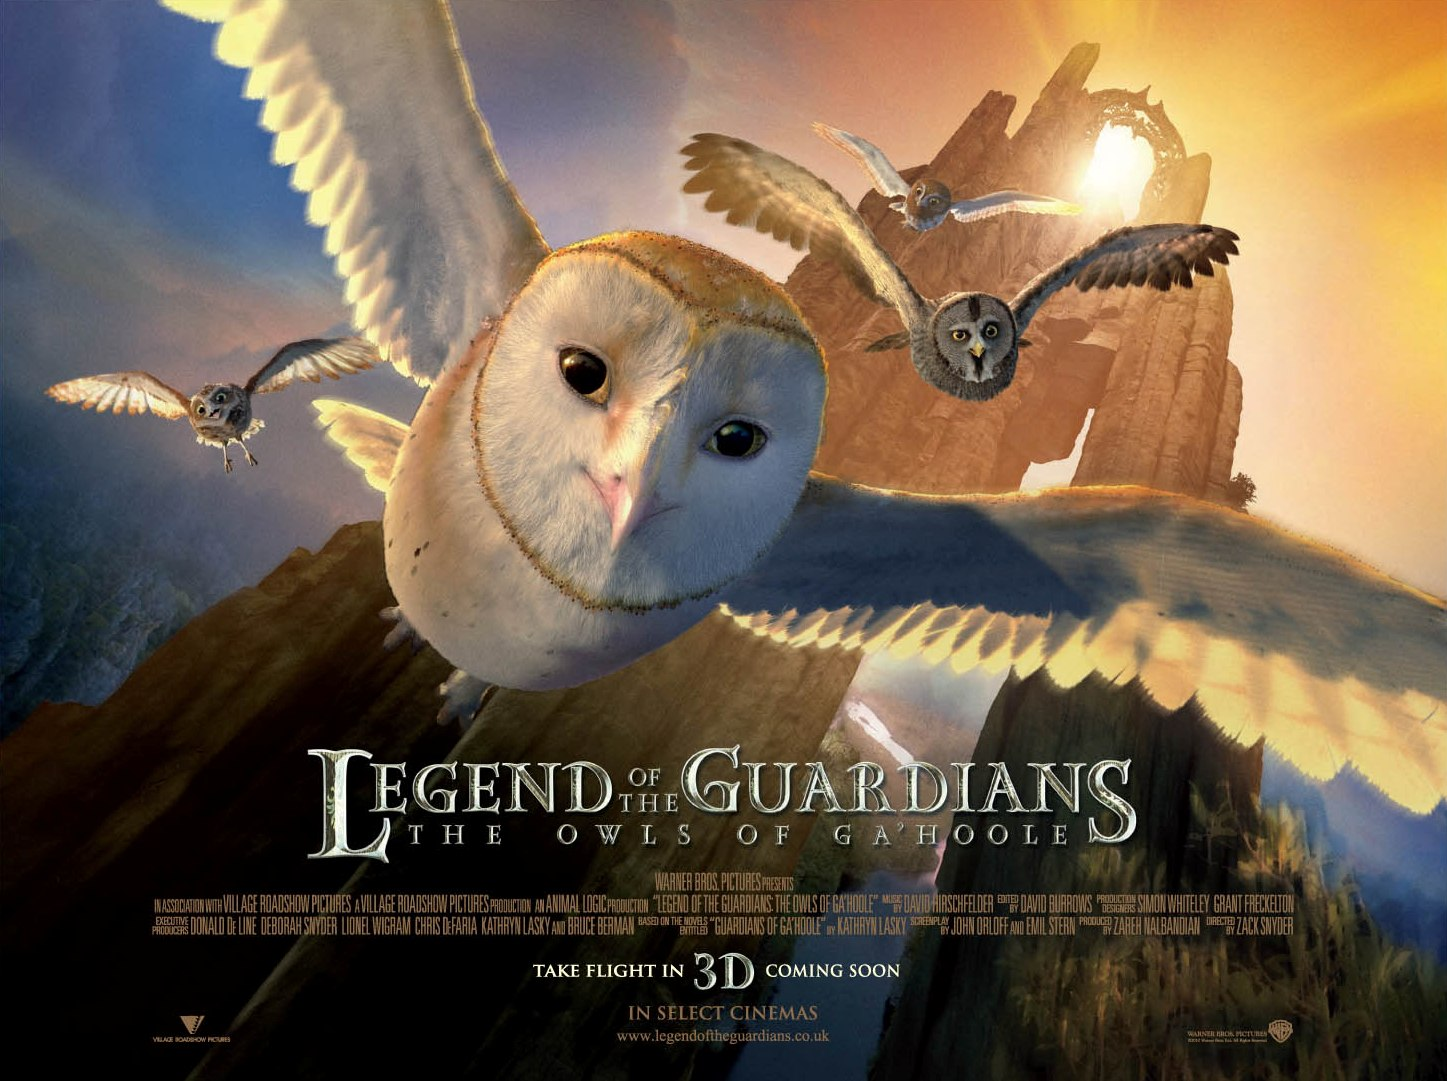 http://4.bp.blogspot.com/_PZOsEmYgZyI/TKMMR5zANNI/AAAAAAAAAok/TjIWsMTgEPM/s1600/Legend-Of-The-Guardians-The-Owls-Of-GaHoole-UK-movie-poster-quad-2.jpg